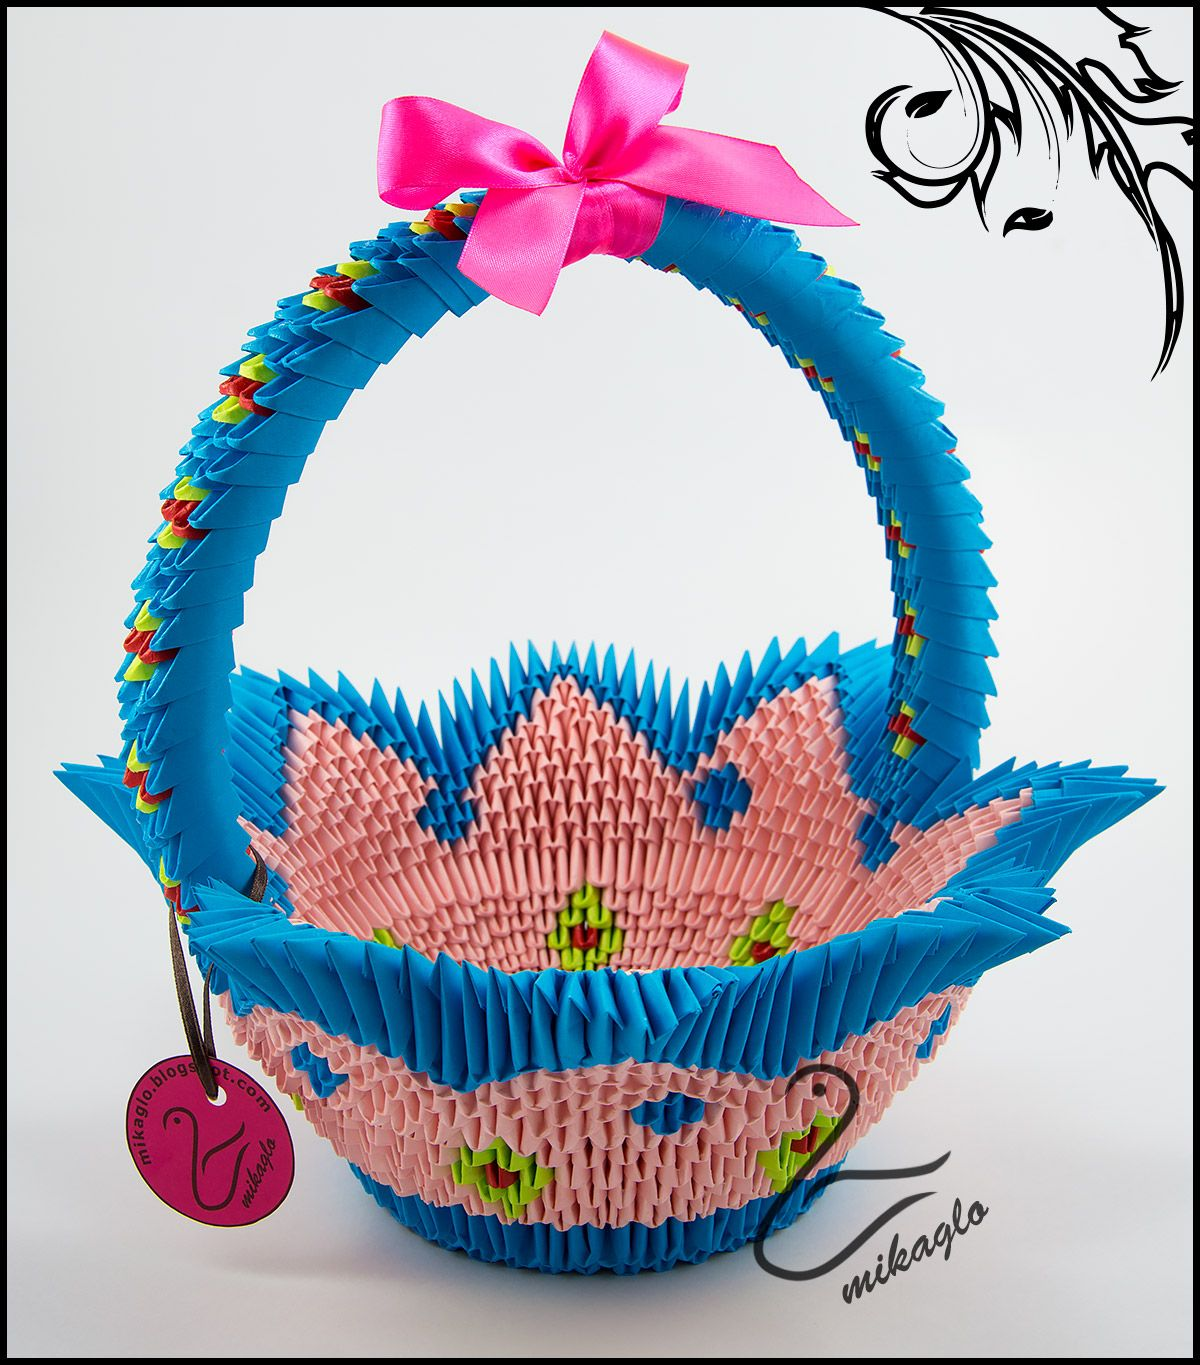 Blue-pink origami 3d basket tutorial -> mikaglo.blogspot ... - photo#38